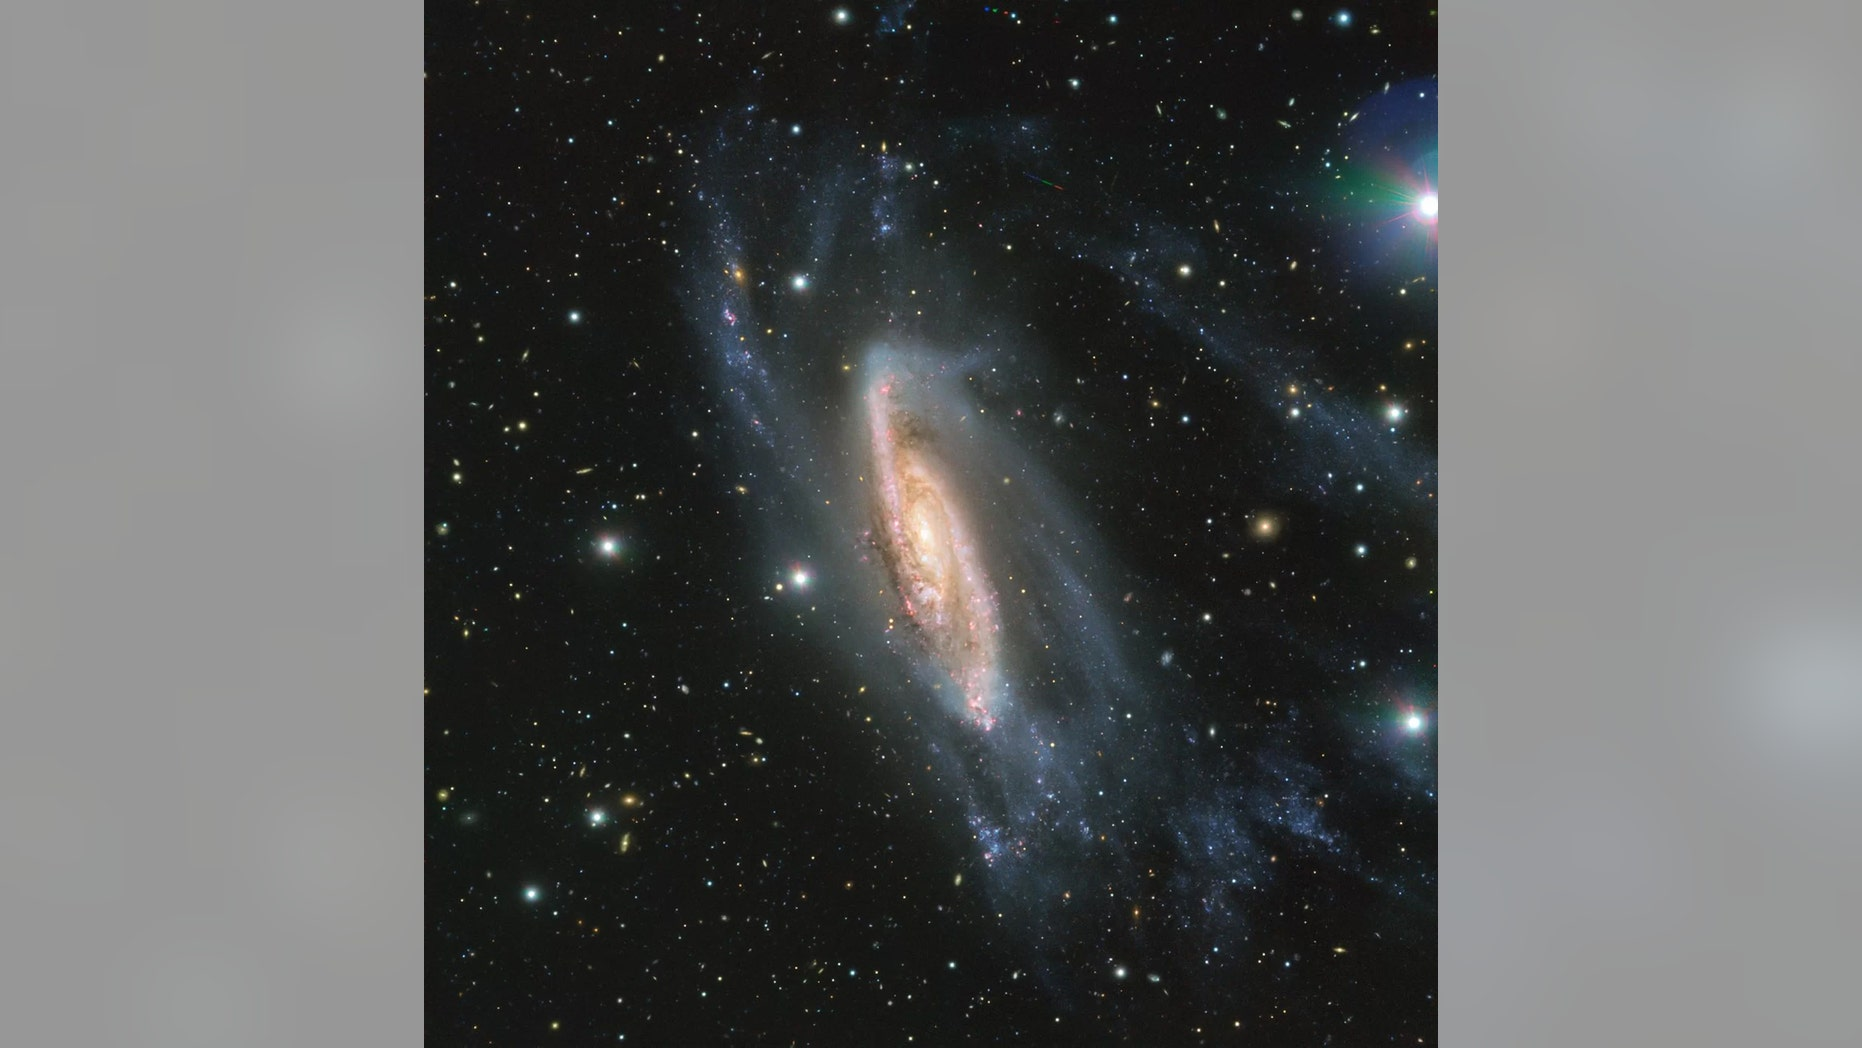 The European Southern Observatory's (ESO) Very Large Telescope in Chile captured this view of the spiral galaxy NGC 3981 in May 2018. The image was taken using the ESO's FORS2 instrument, as part of the Cosmic Gems program, which photographs the southern skies when conditions aren't good for scientific observations. An asteroid's trail can also be seen near the top, slightly right of center. Credit: ESO